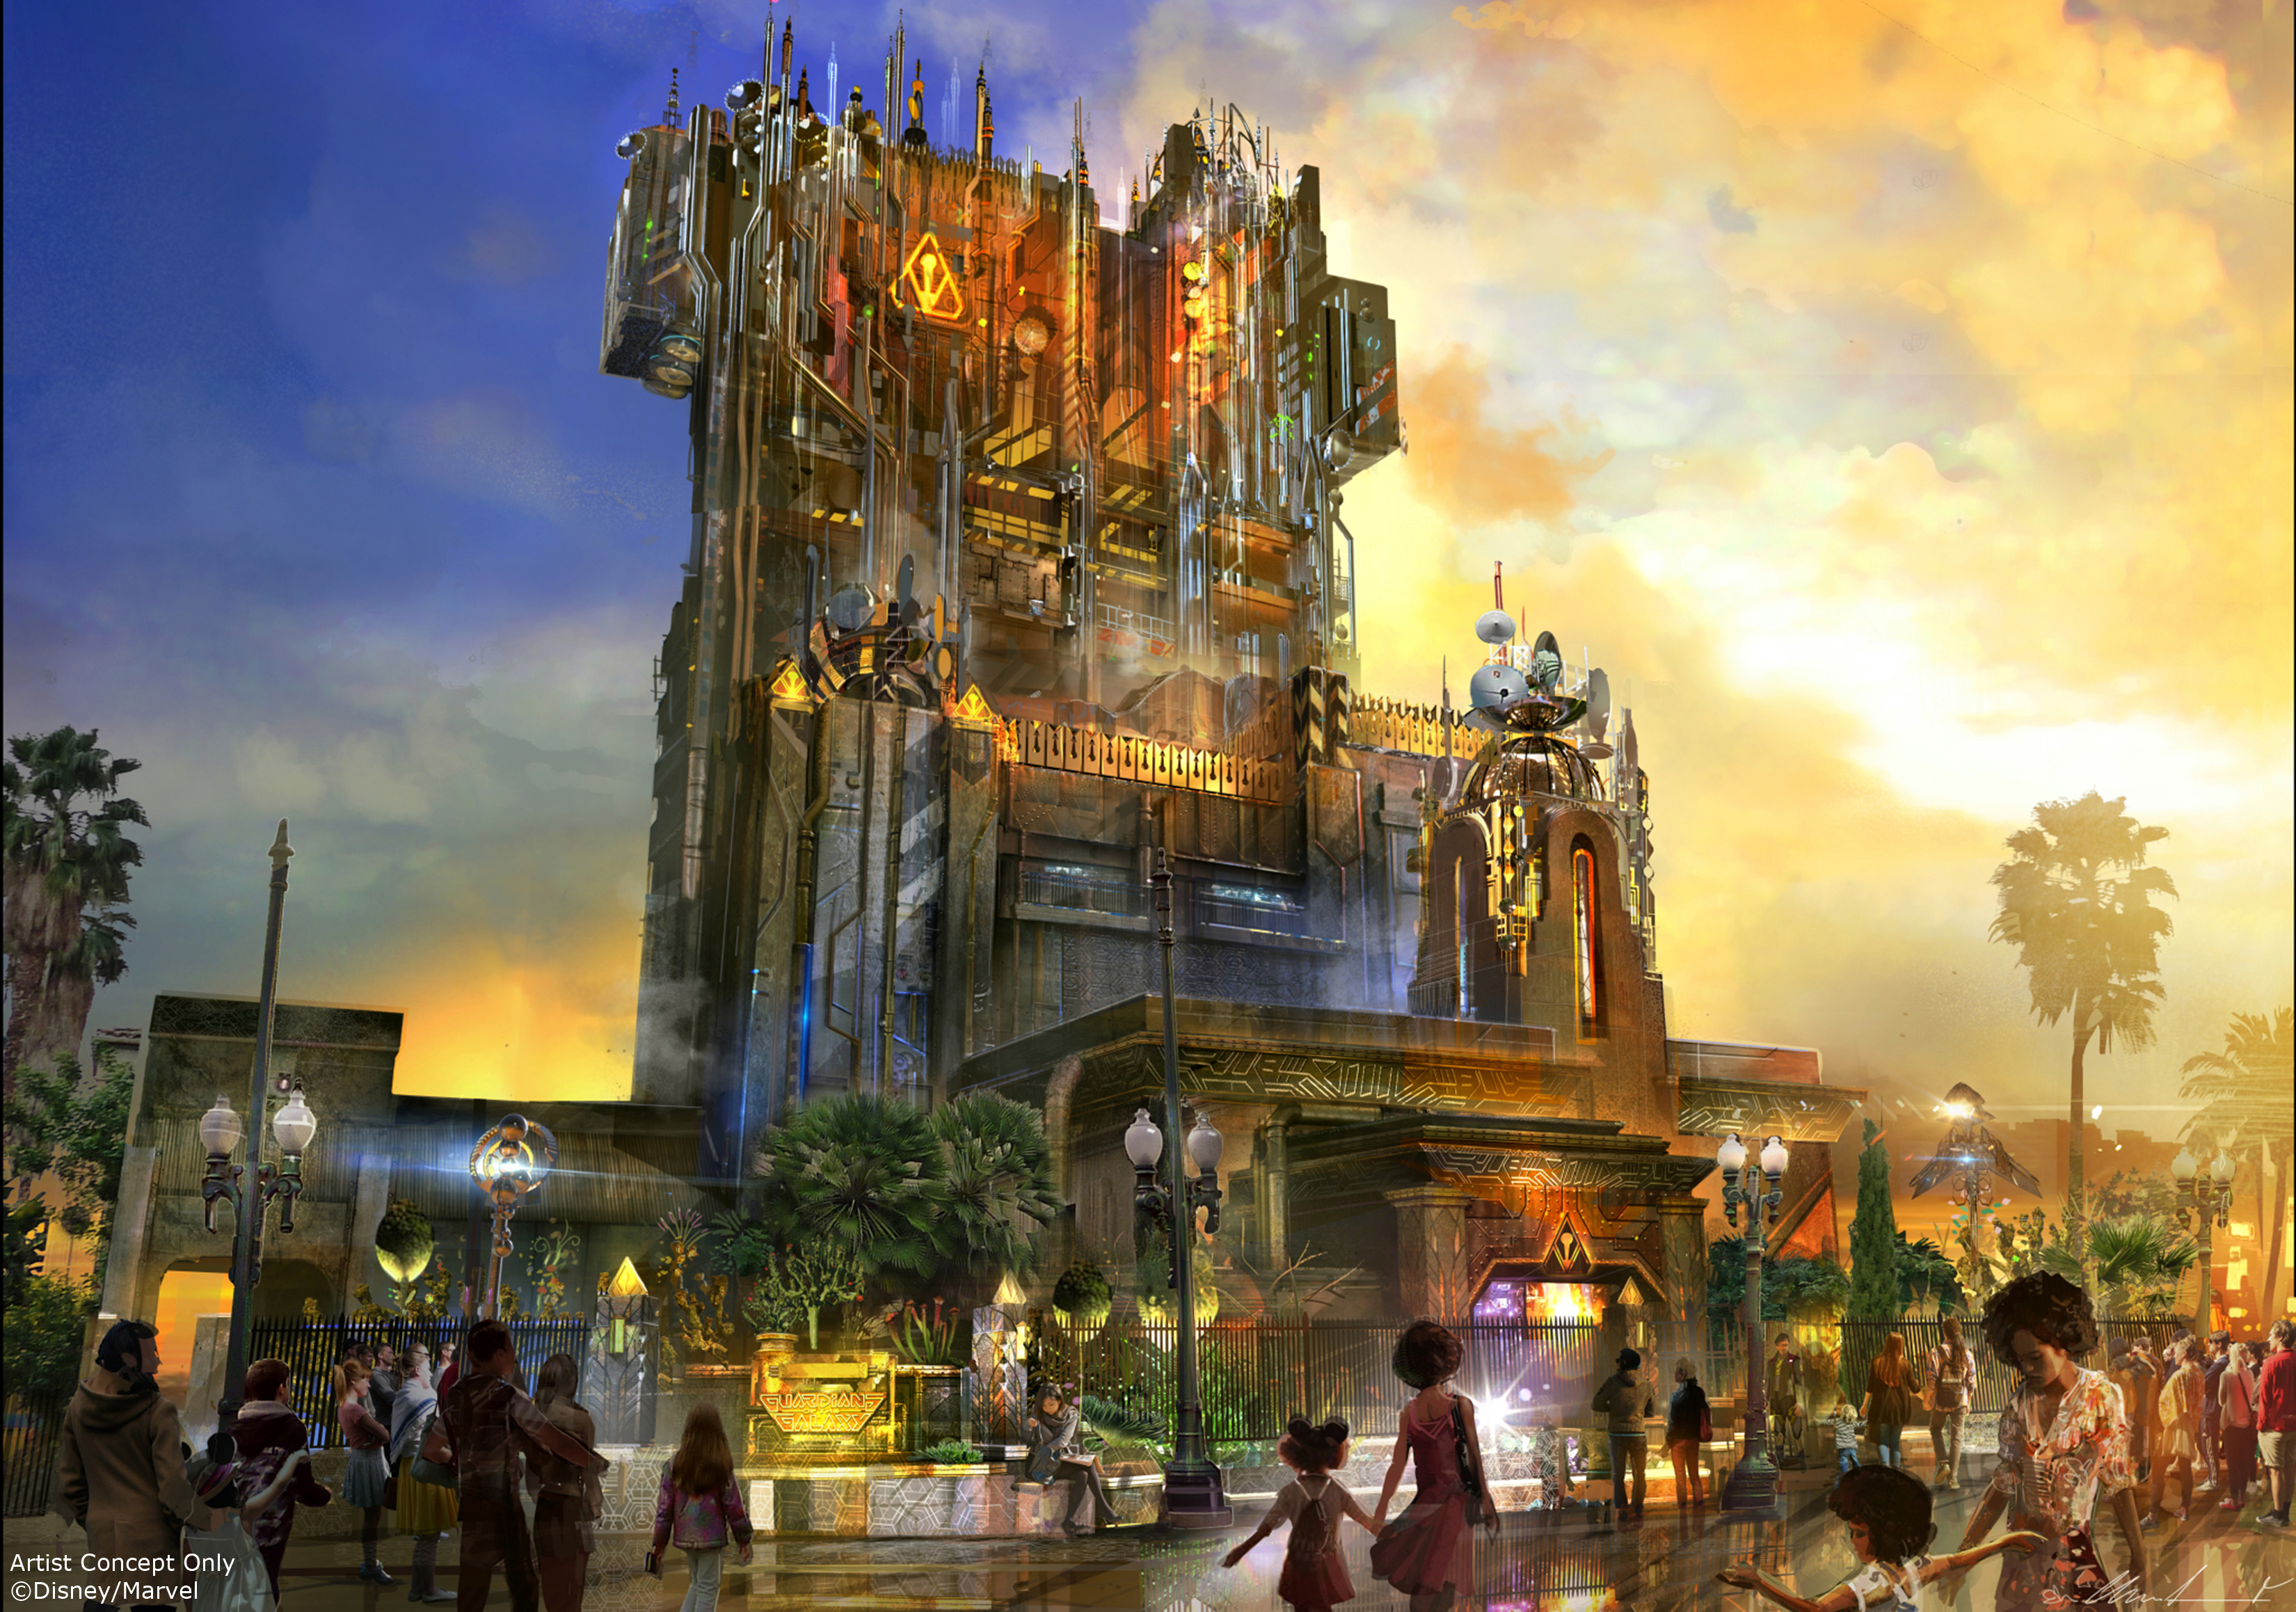 Mouseplanet disneyland resort update for february 20 26 2017 by guardians of the galaxy mission breakout opens may 27 at disney califo rnia adventure photo disney publicscrutiny Images